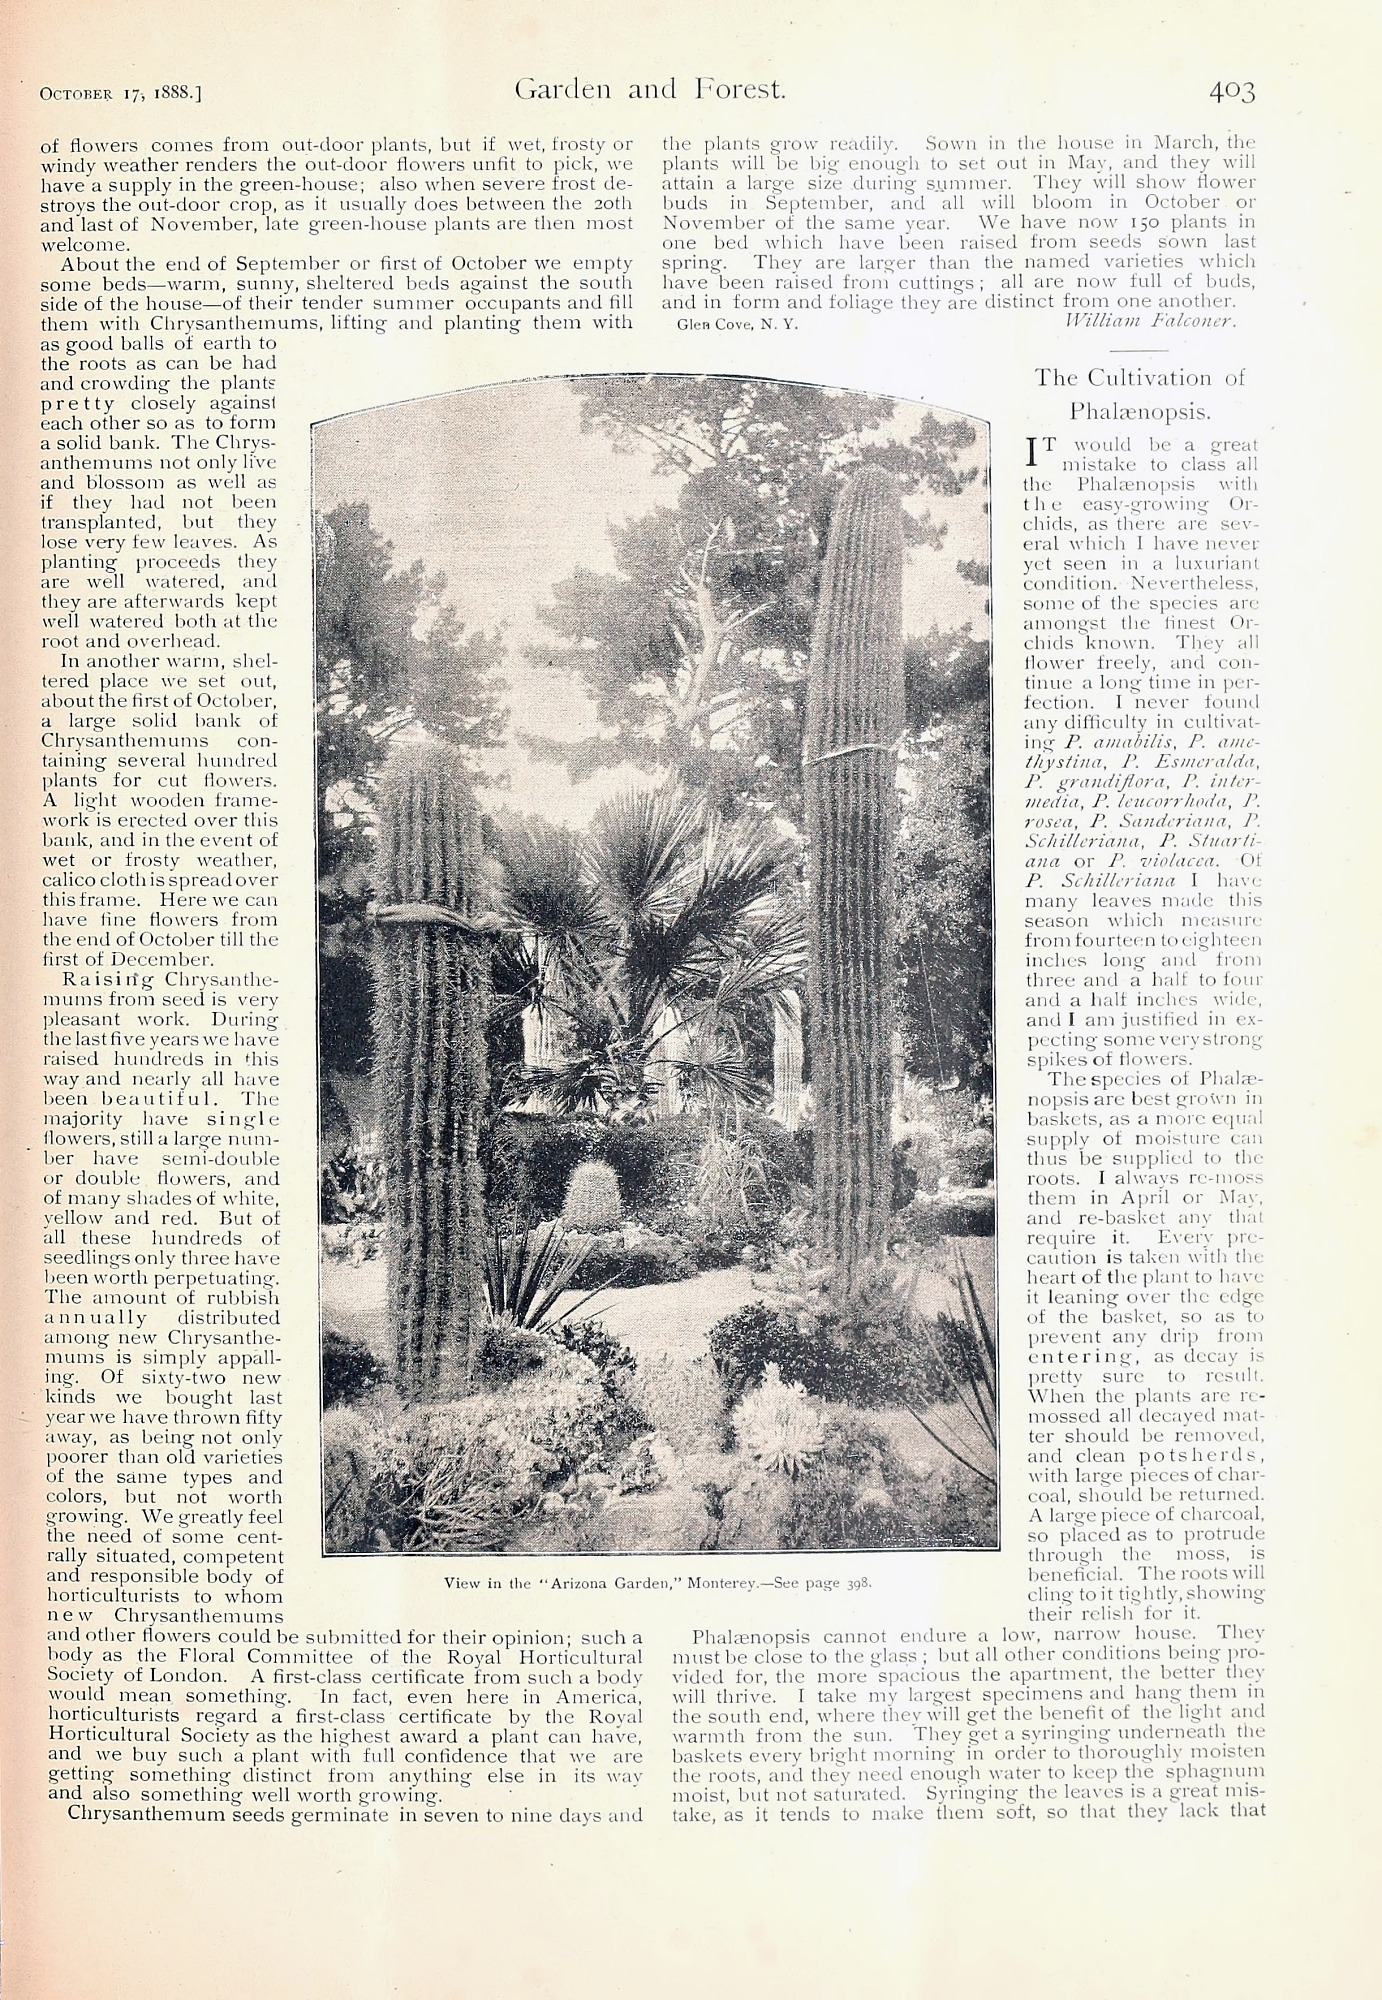 Garden and Forest, a weekly journal begun by Sargent, ran for a decade (1888–1897), covering topics ranging from horticulture, gardening, and landscape design to cemeteries and town planning.